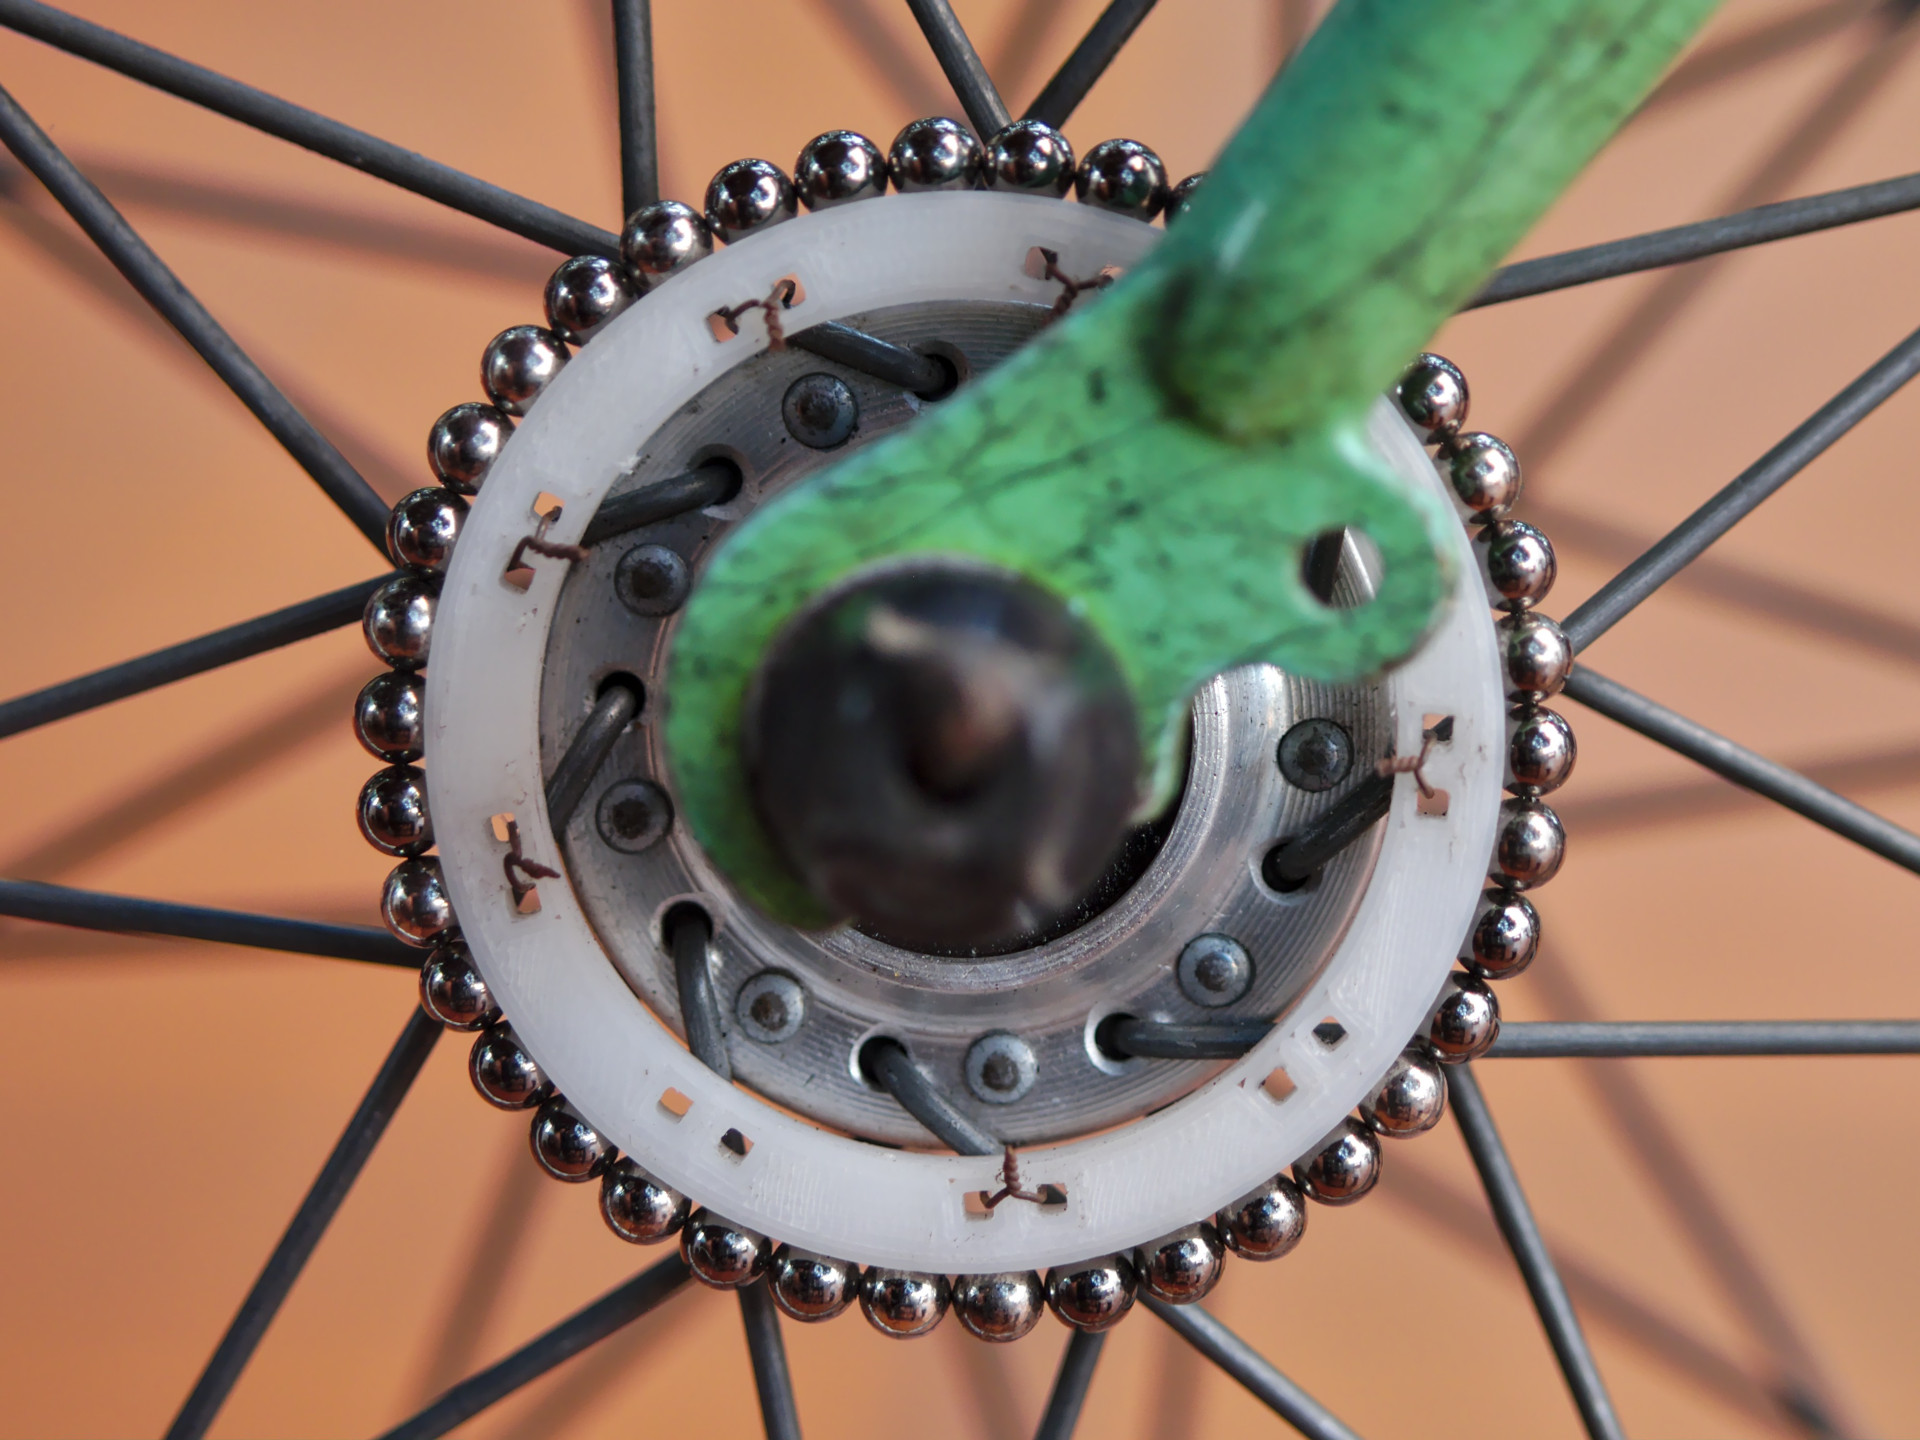 Tetramag spheres holder mounted on a bike wheel